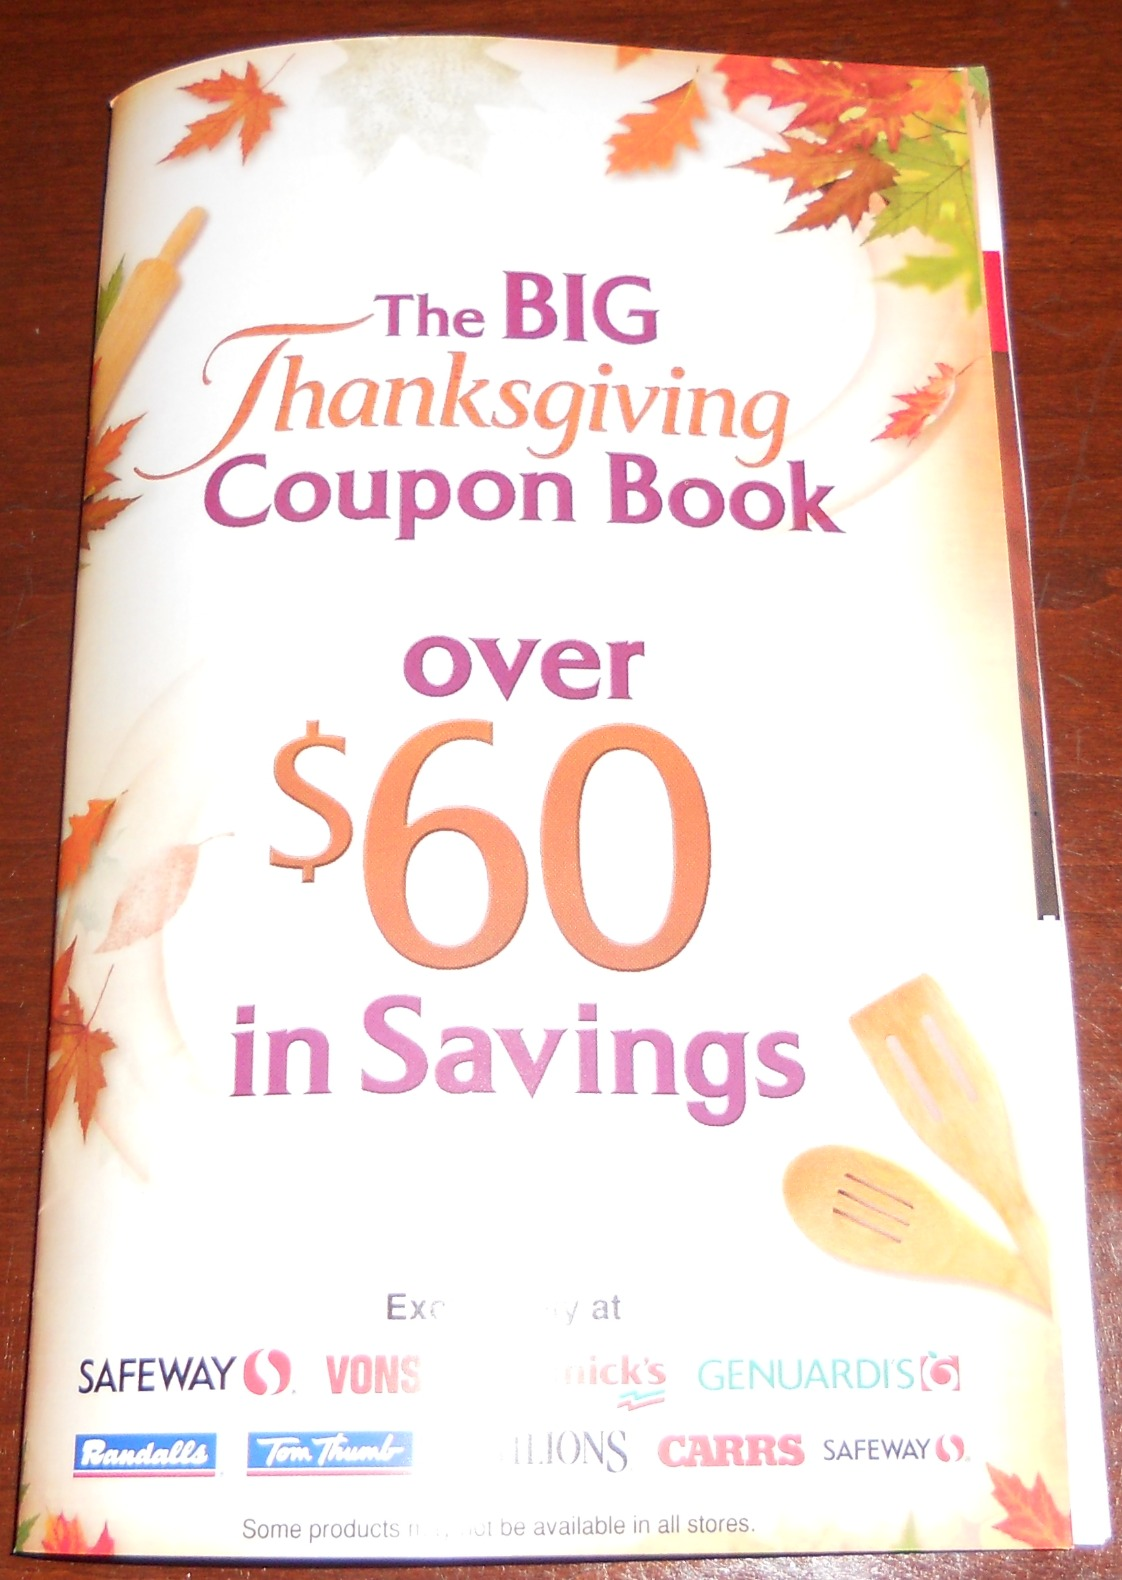 Safeway Thanksgiving coupon book